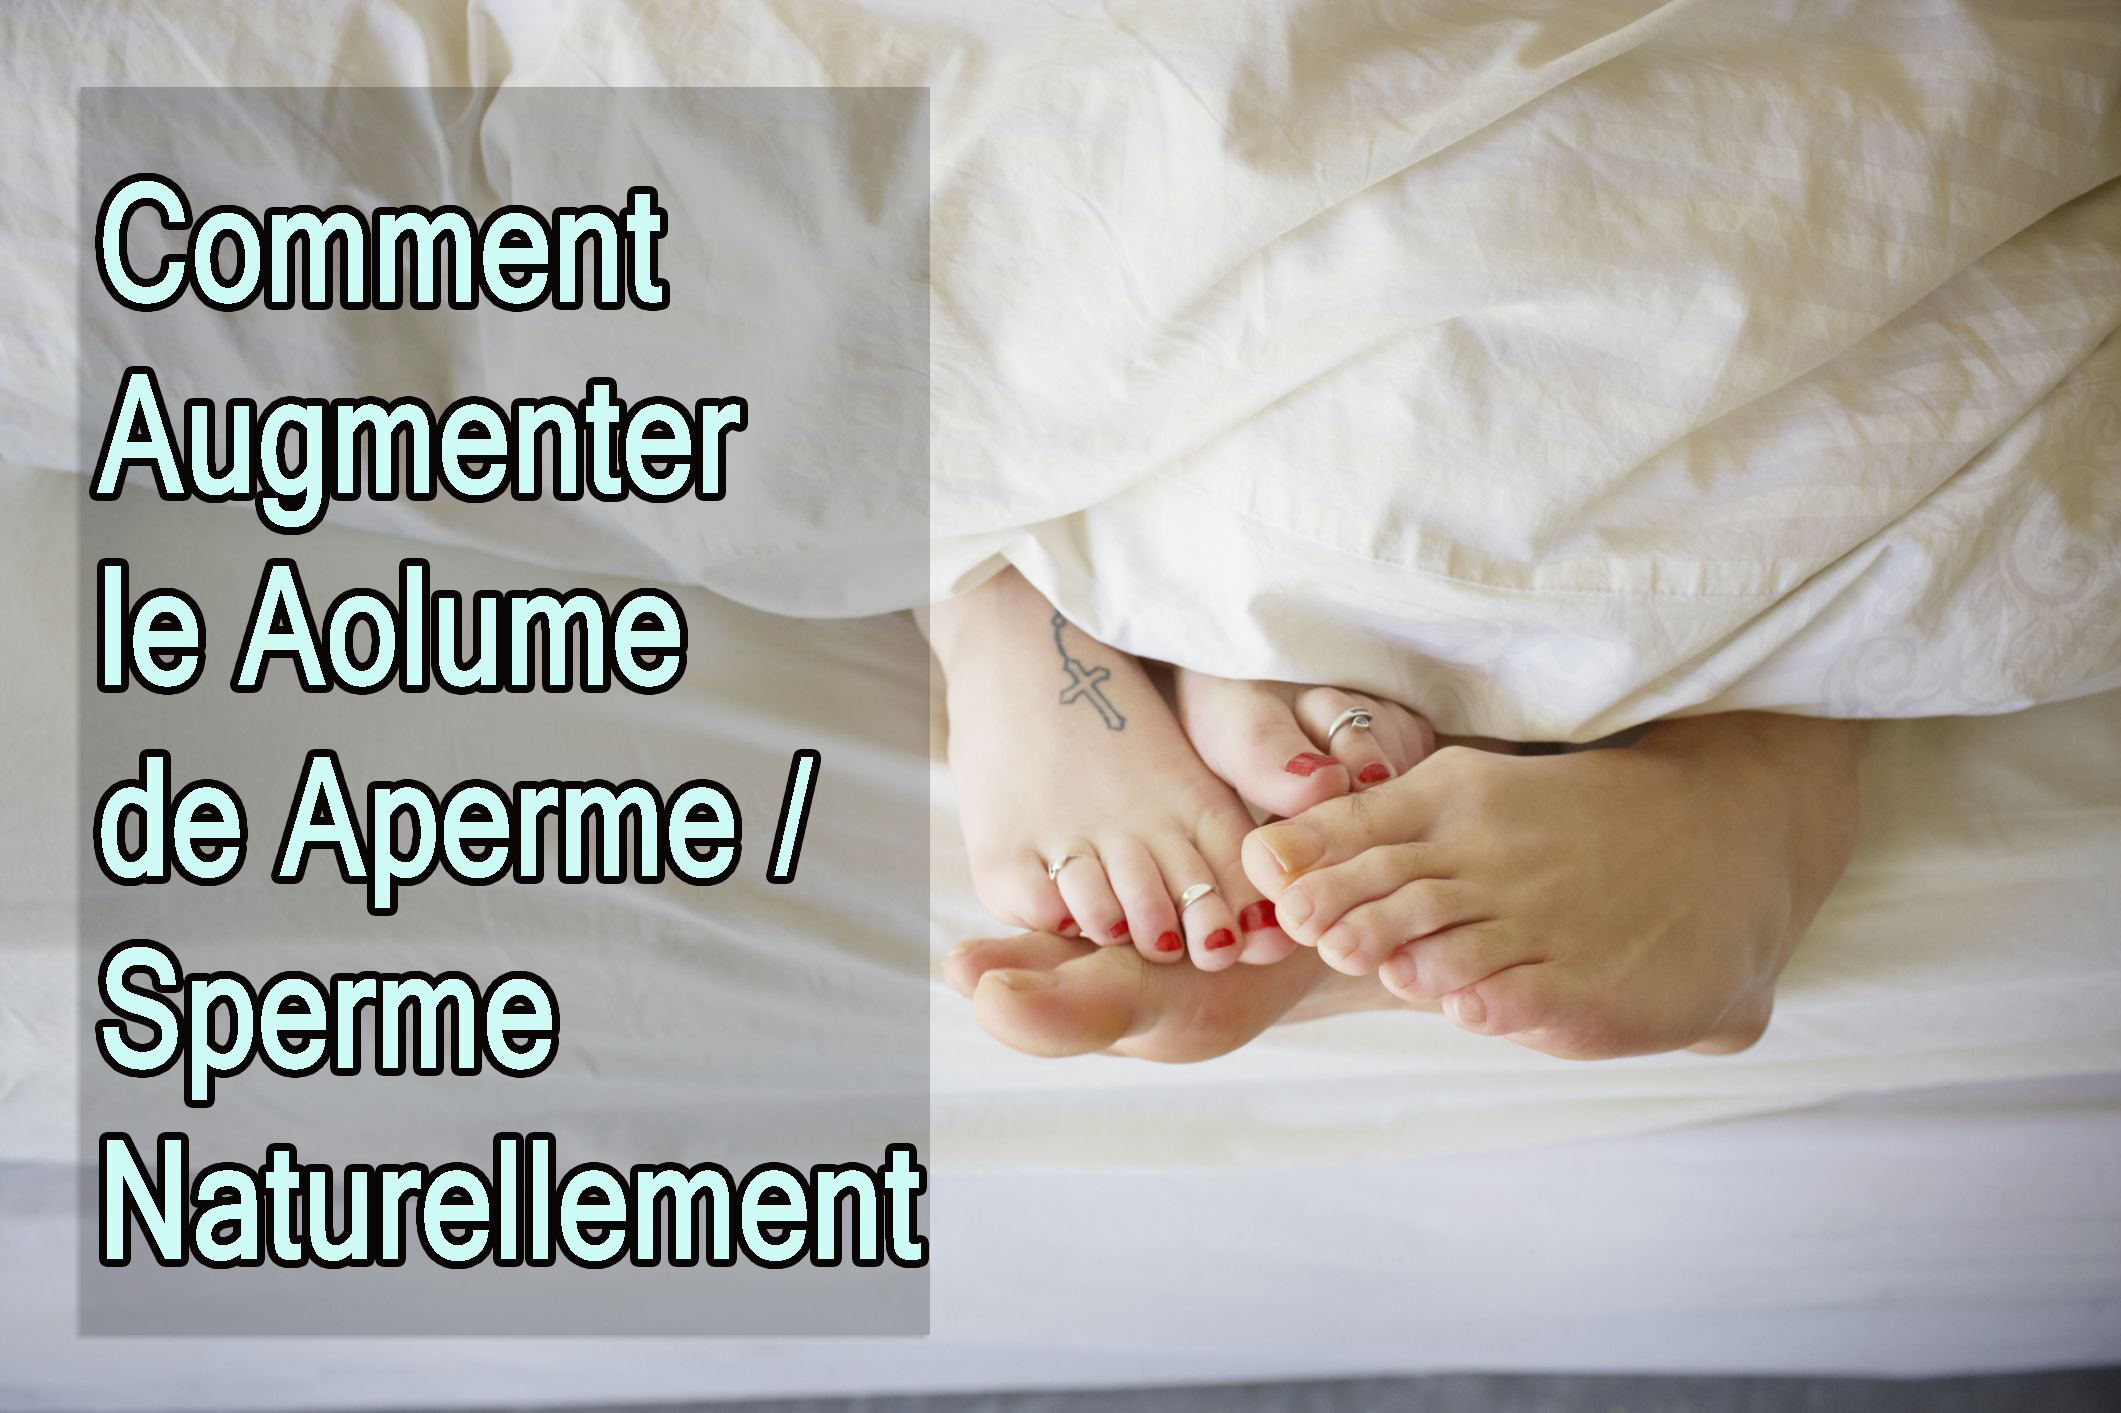 Comment Augmenter le Volume de Sperme / Sperme Naturellement